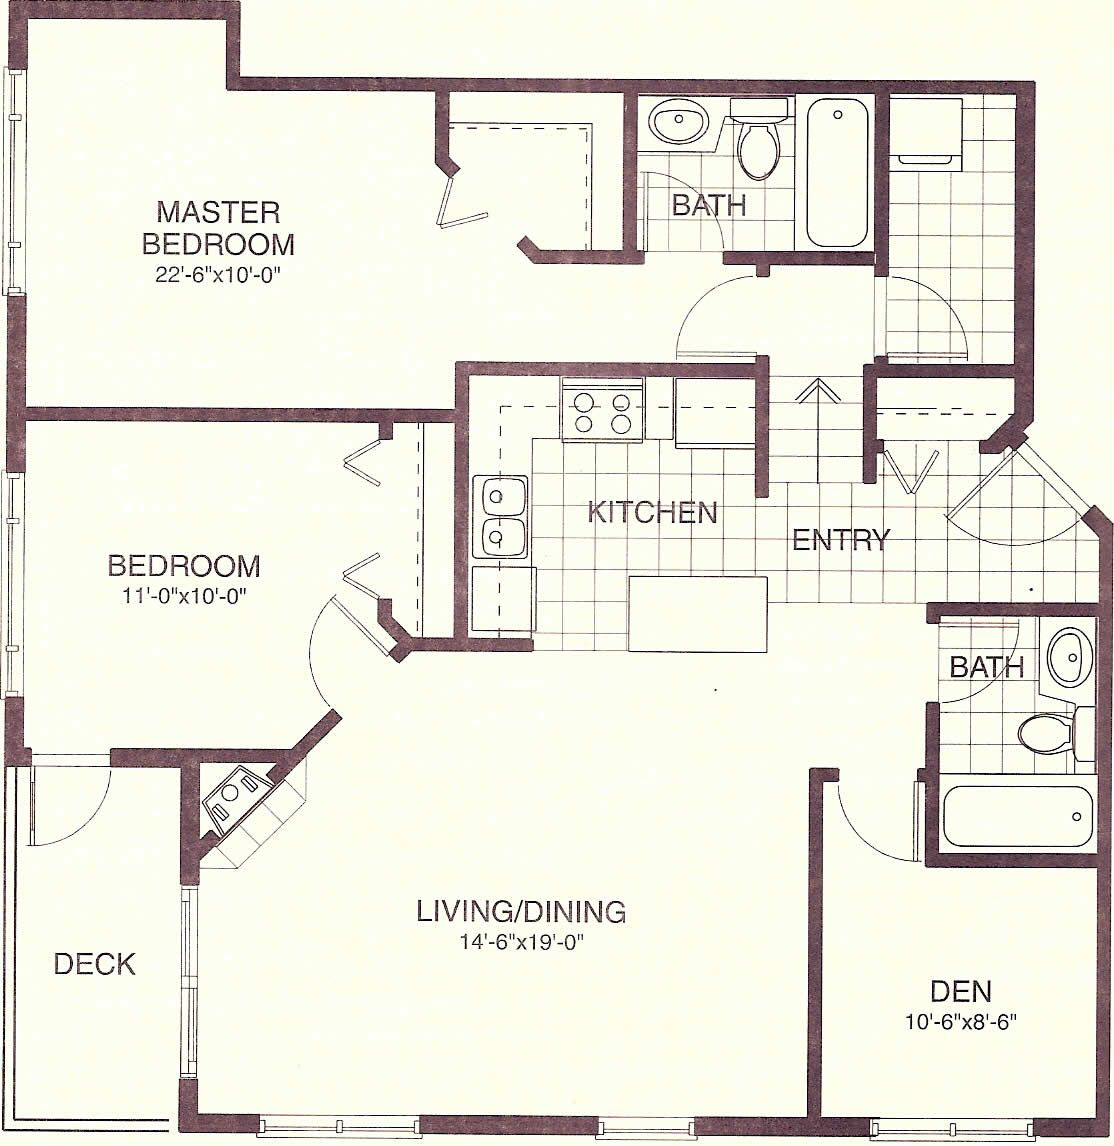 1000 sq ft house plans images for Home designs 1000 sq ft